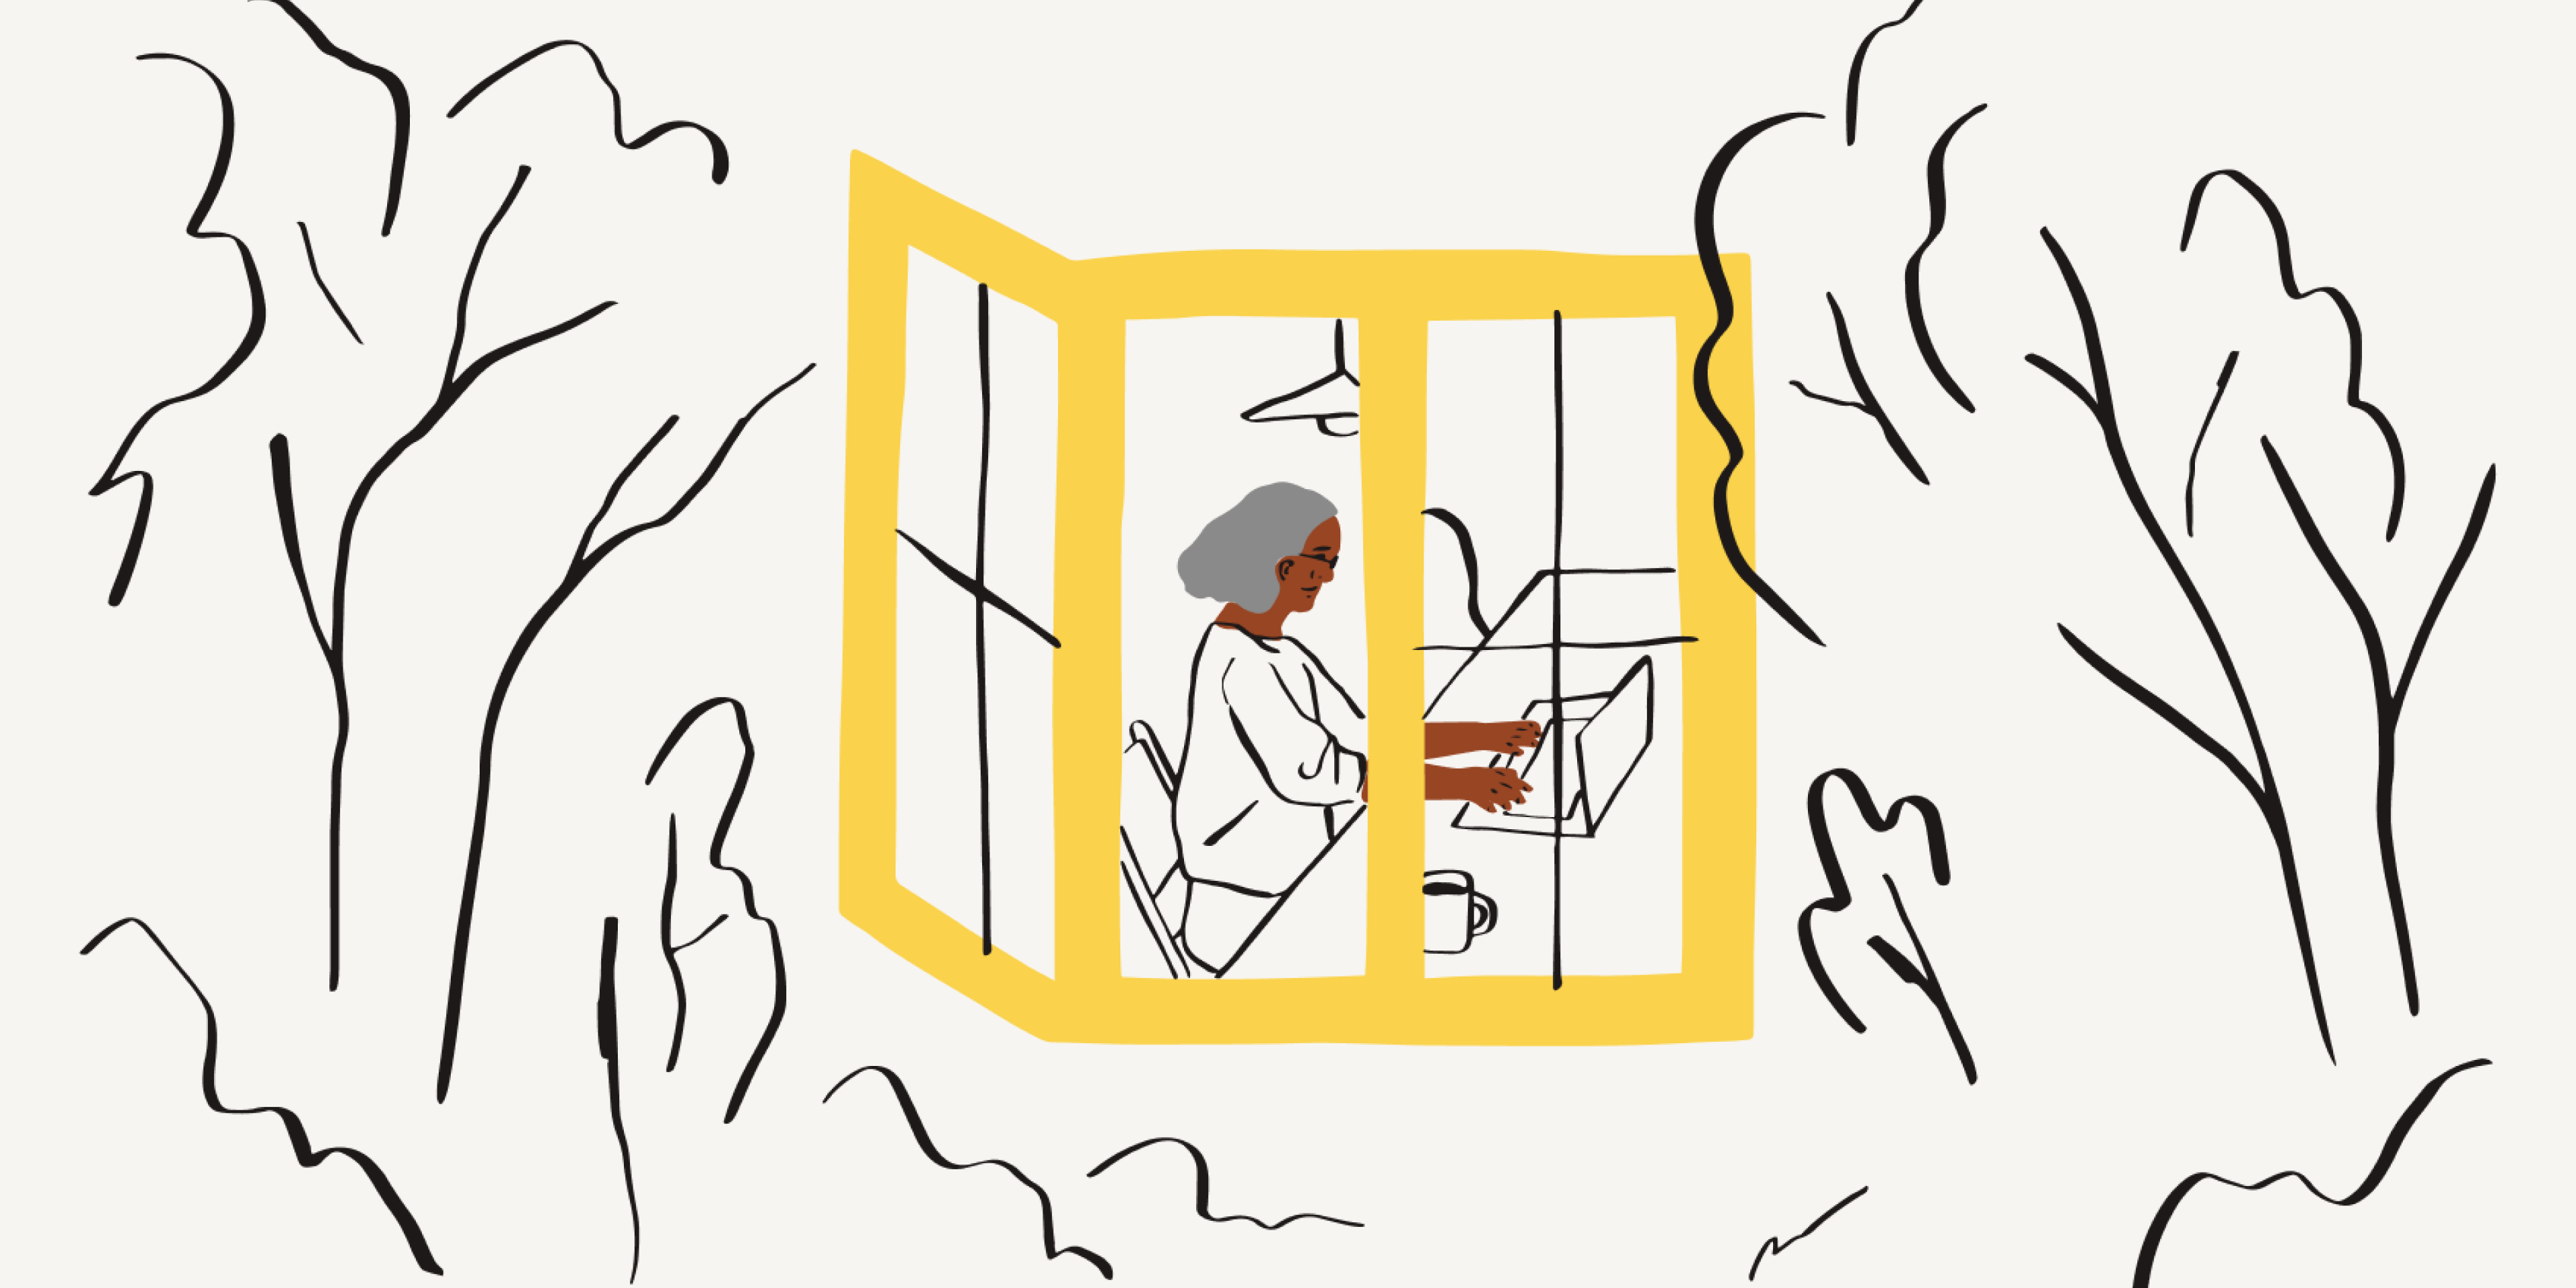 An illustration of a person working from their home